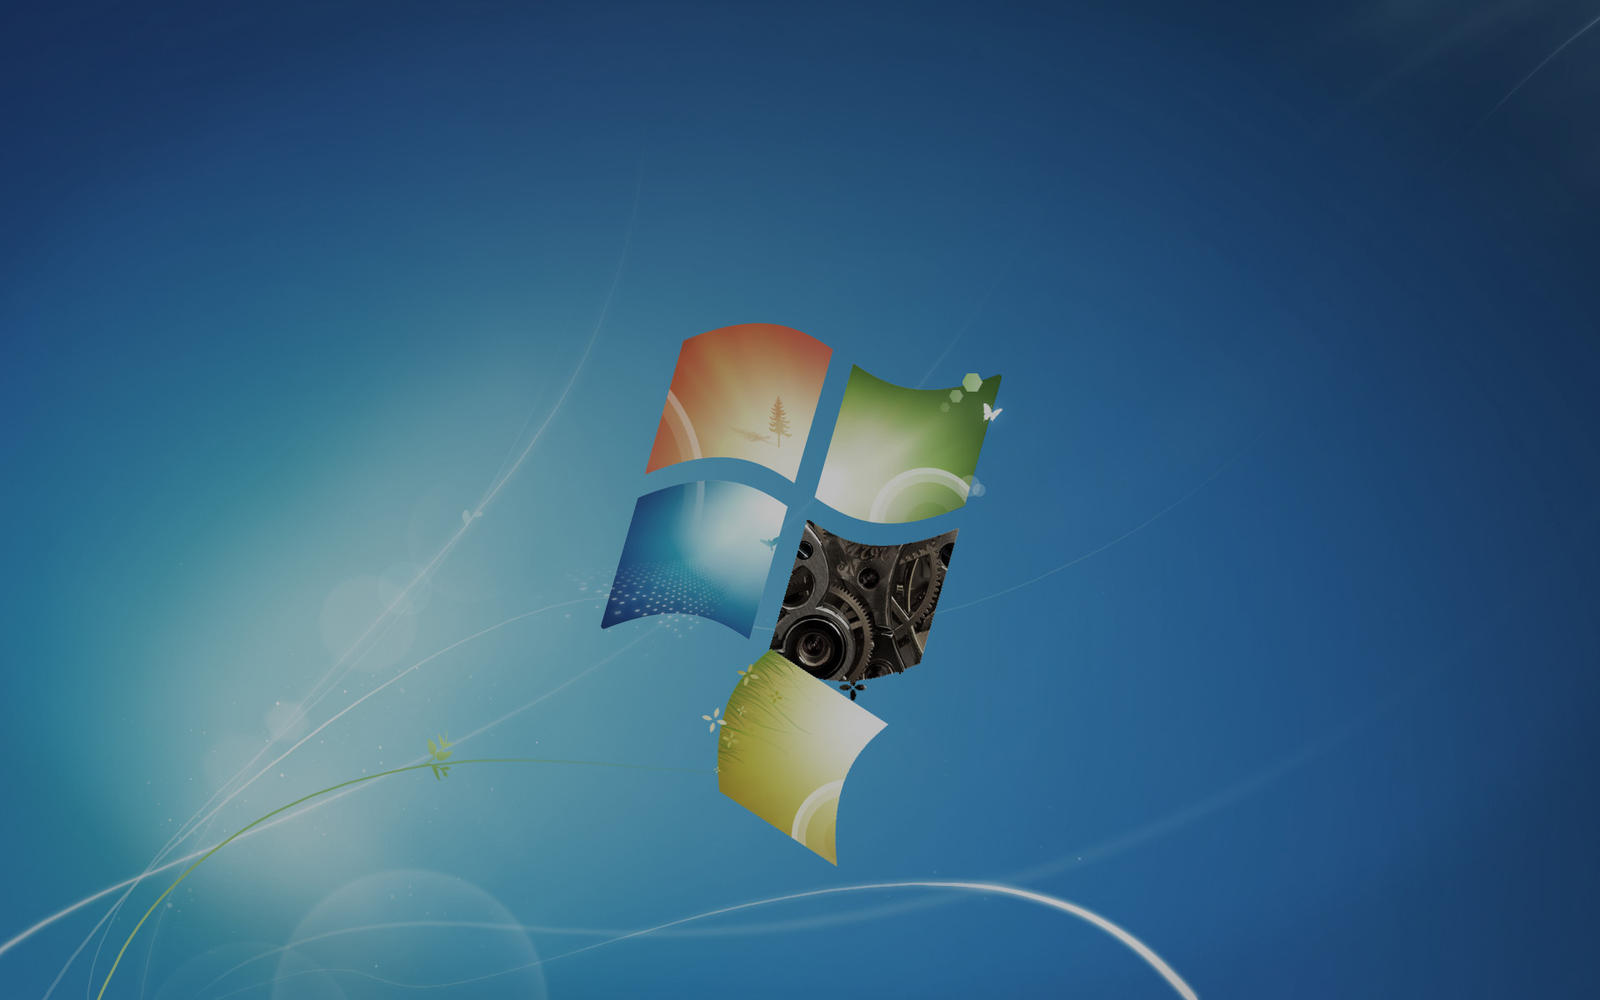 badly aged windows 7 default wallpaper by derpy sheen on